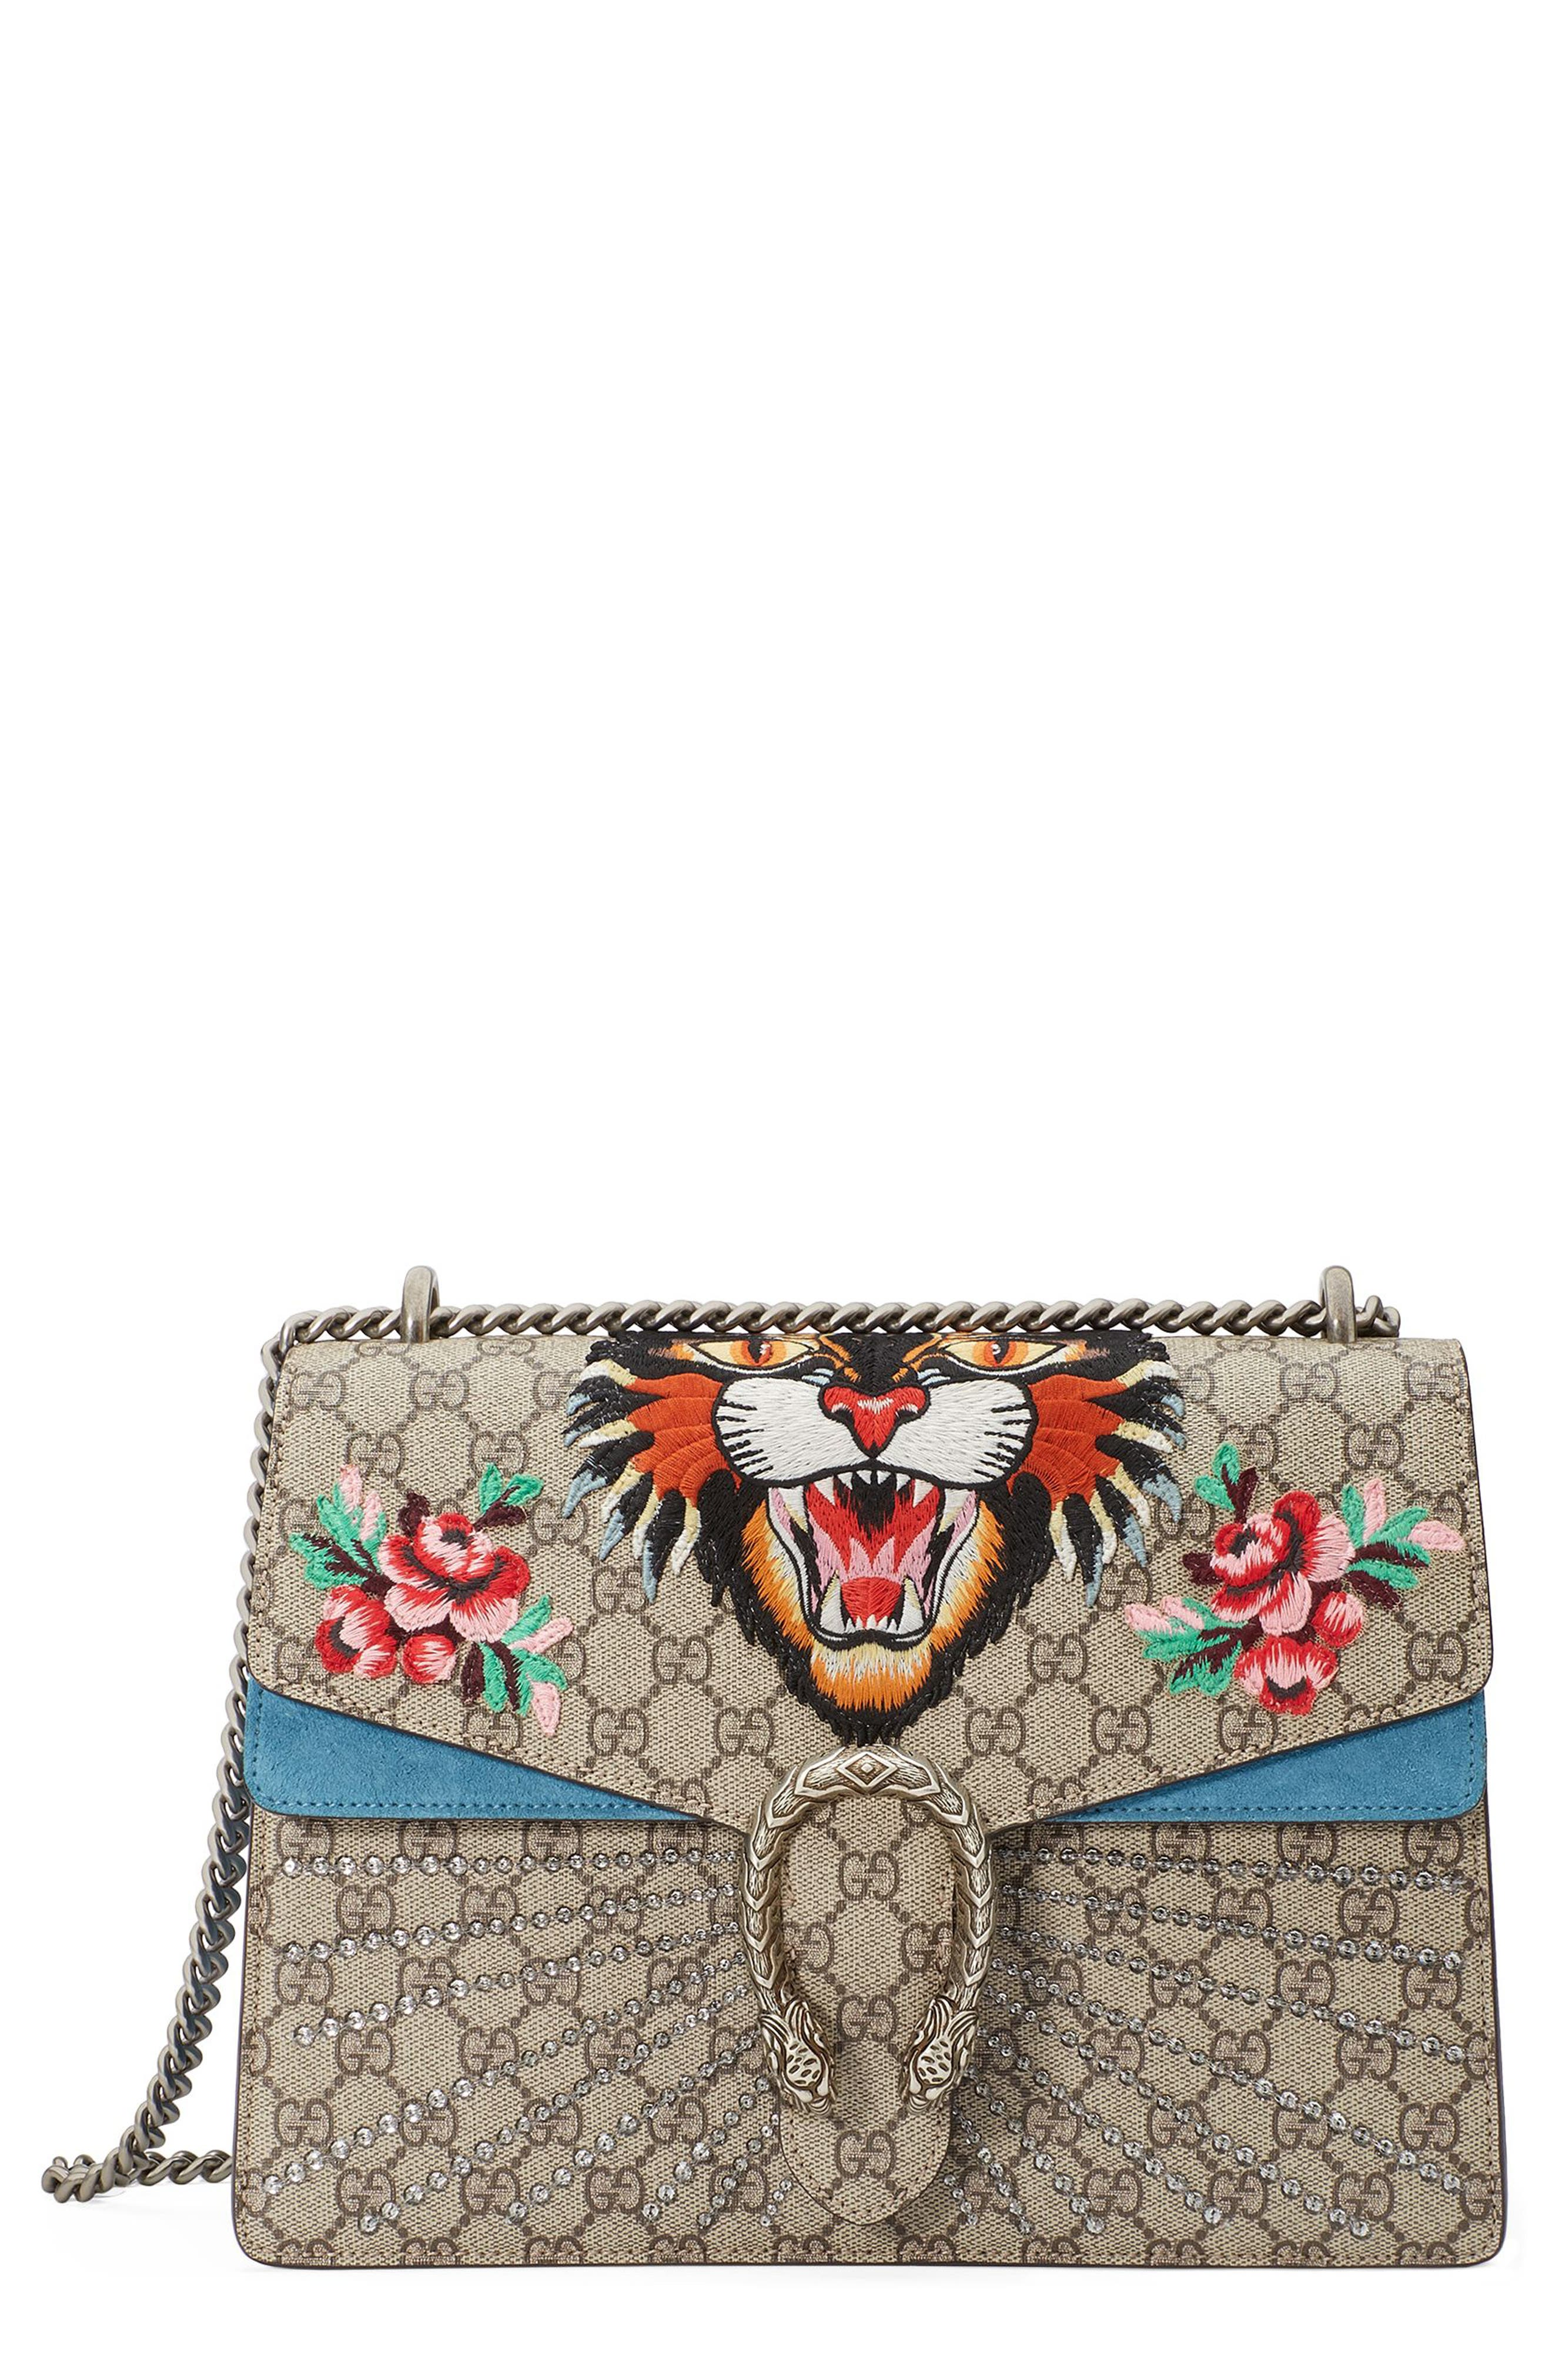 Medium Angry Cat GG Supreme Canvas & Suede Shoulder Bag,                         Main,                         color, Beige Ebony/Ultramarine